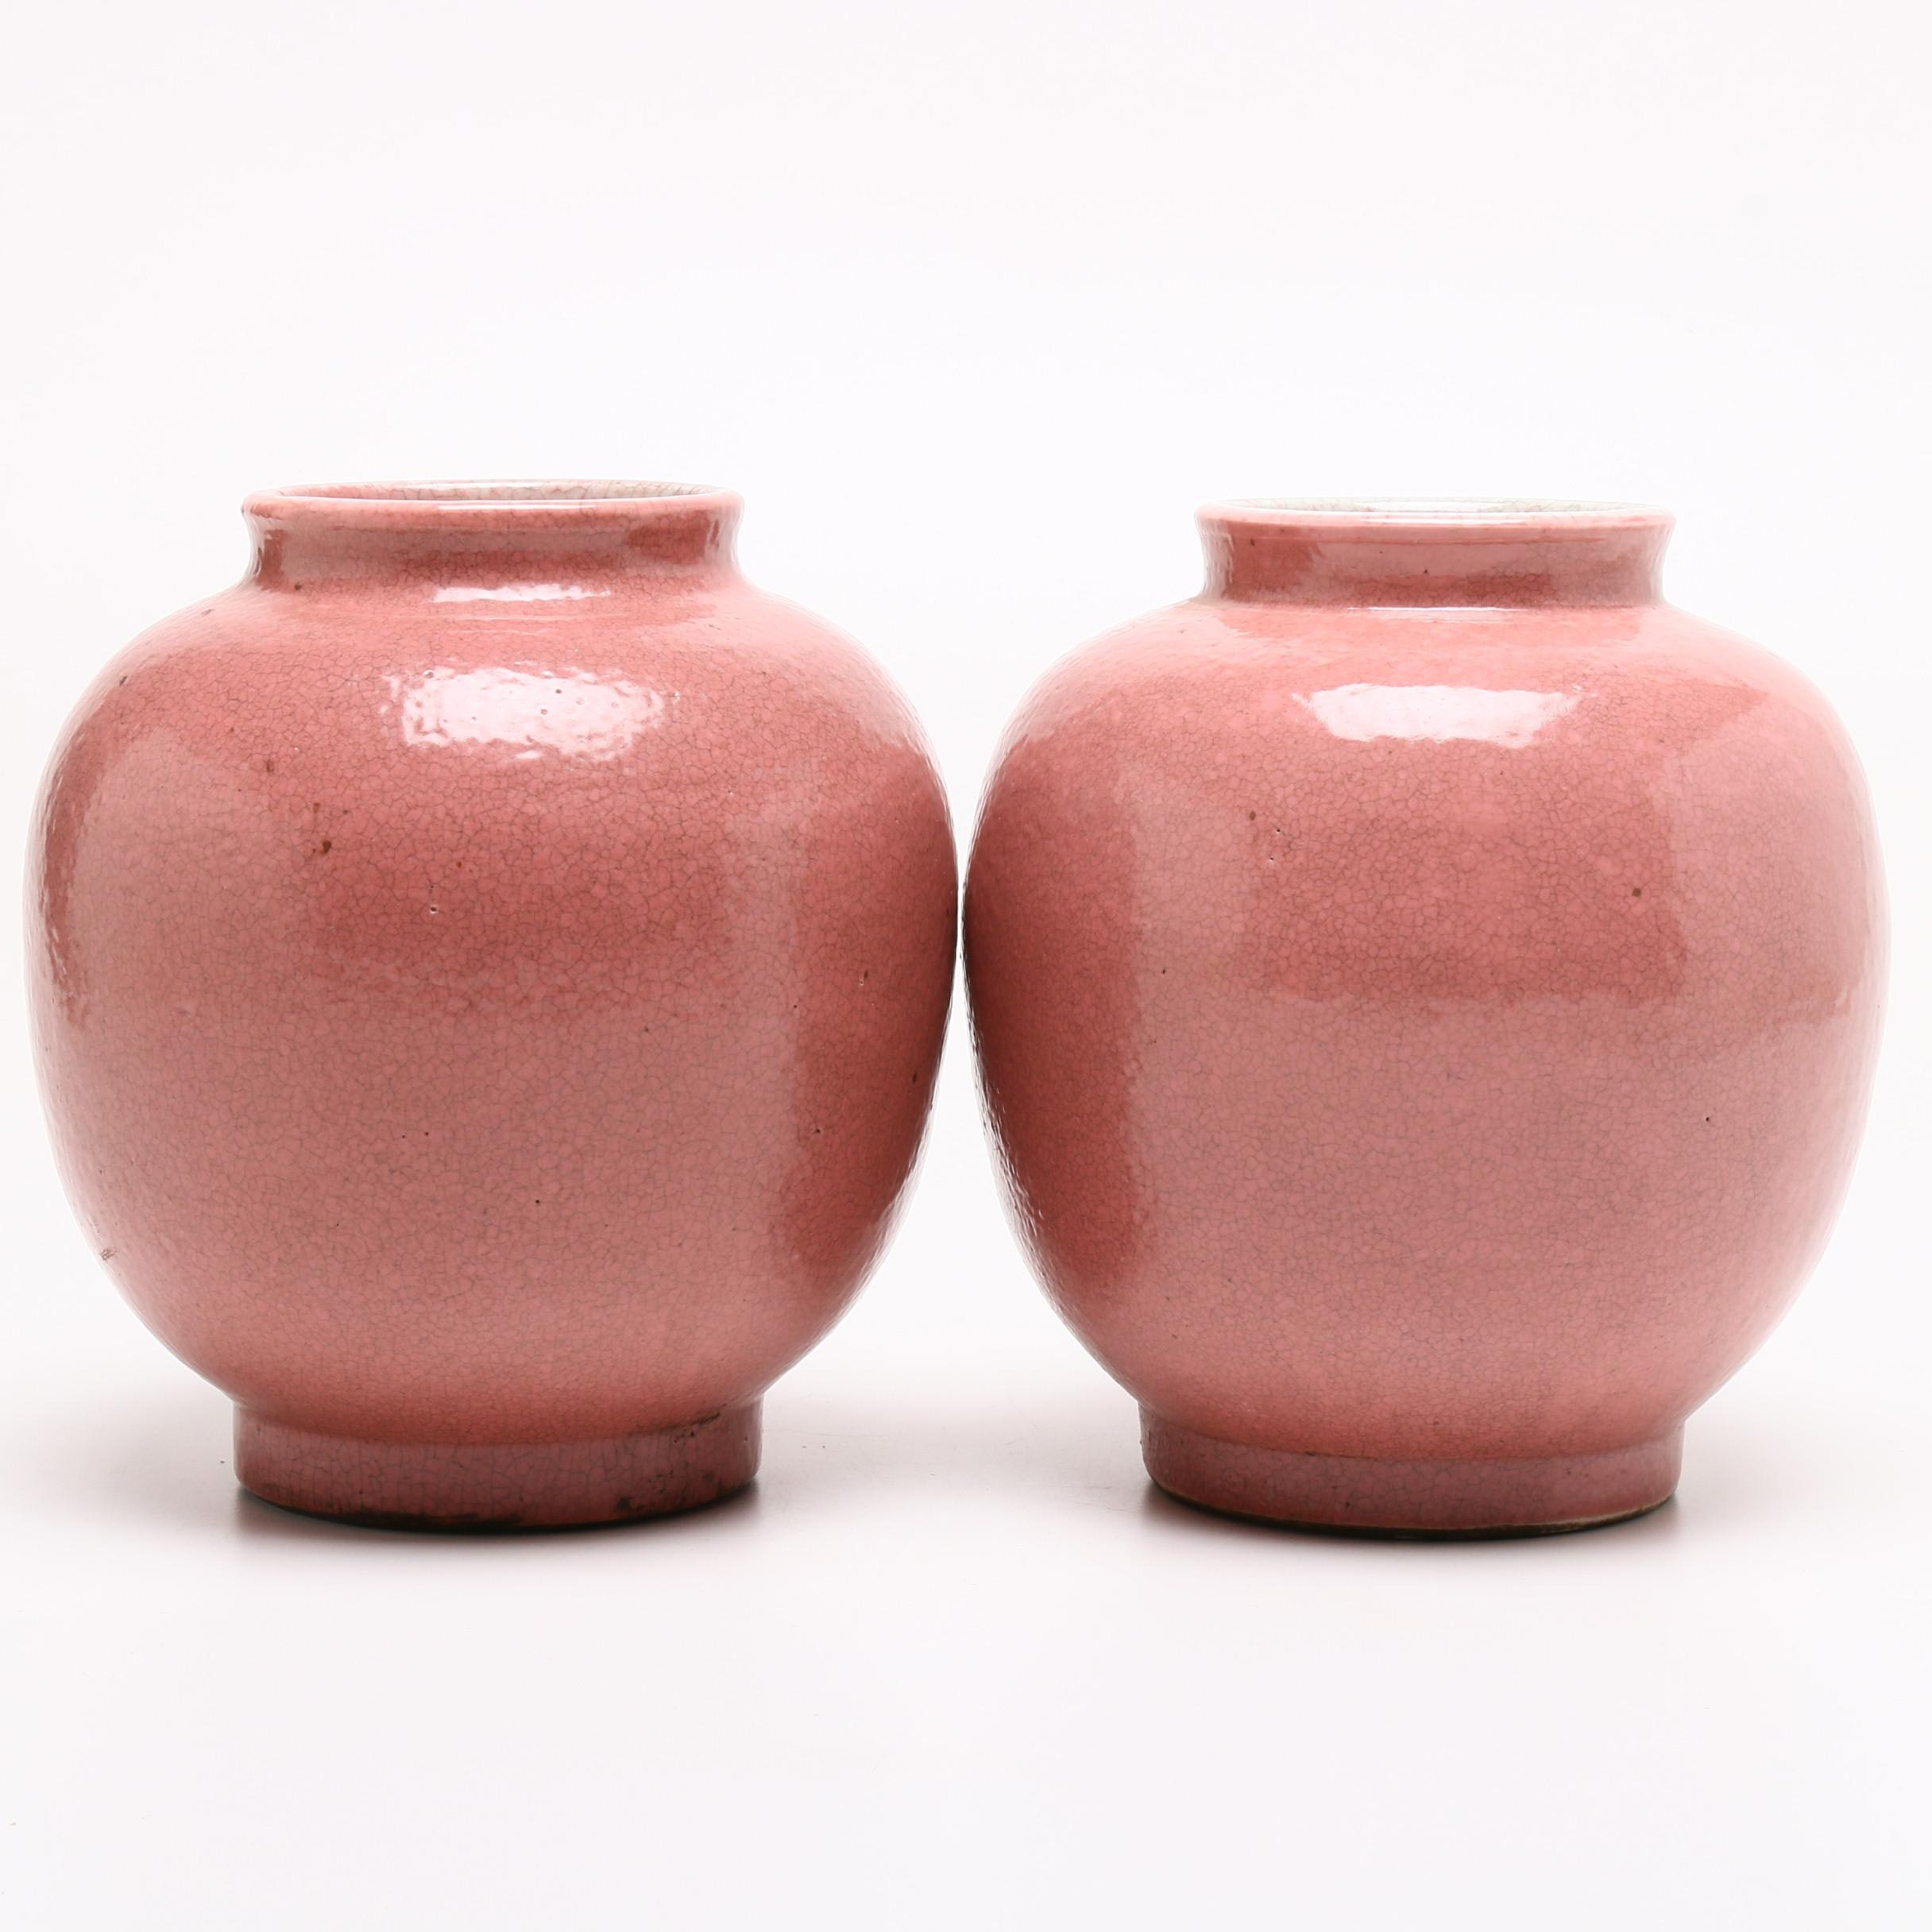 Textured Thrown Stoneware Jars, Early to Mid 20th Century